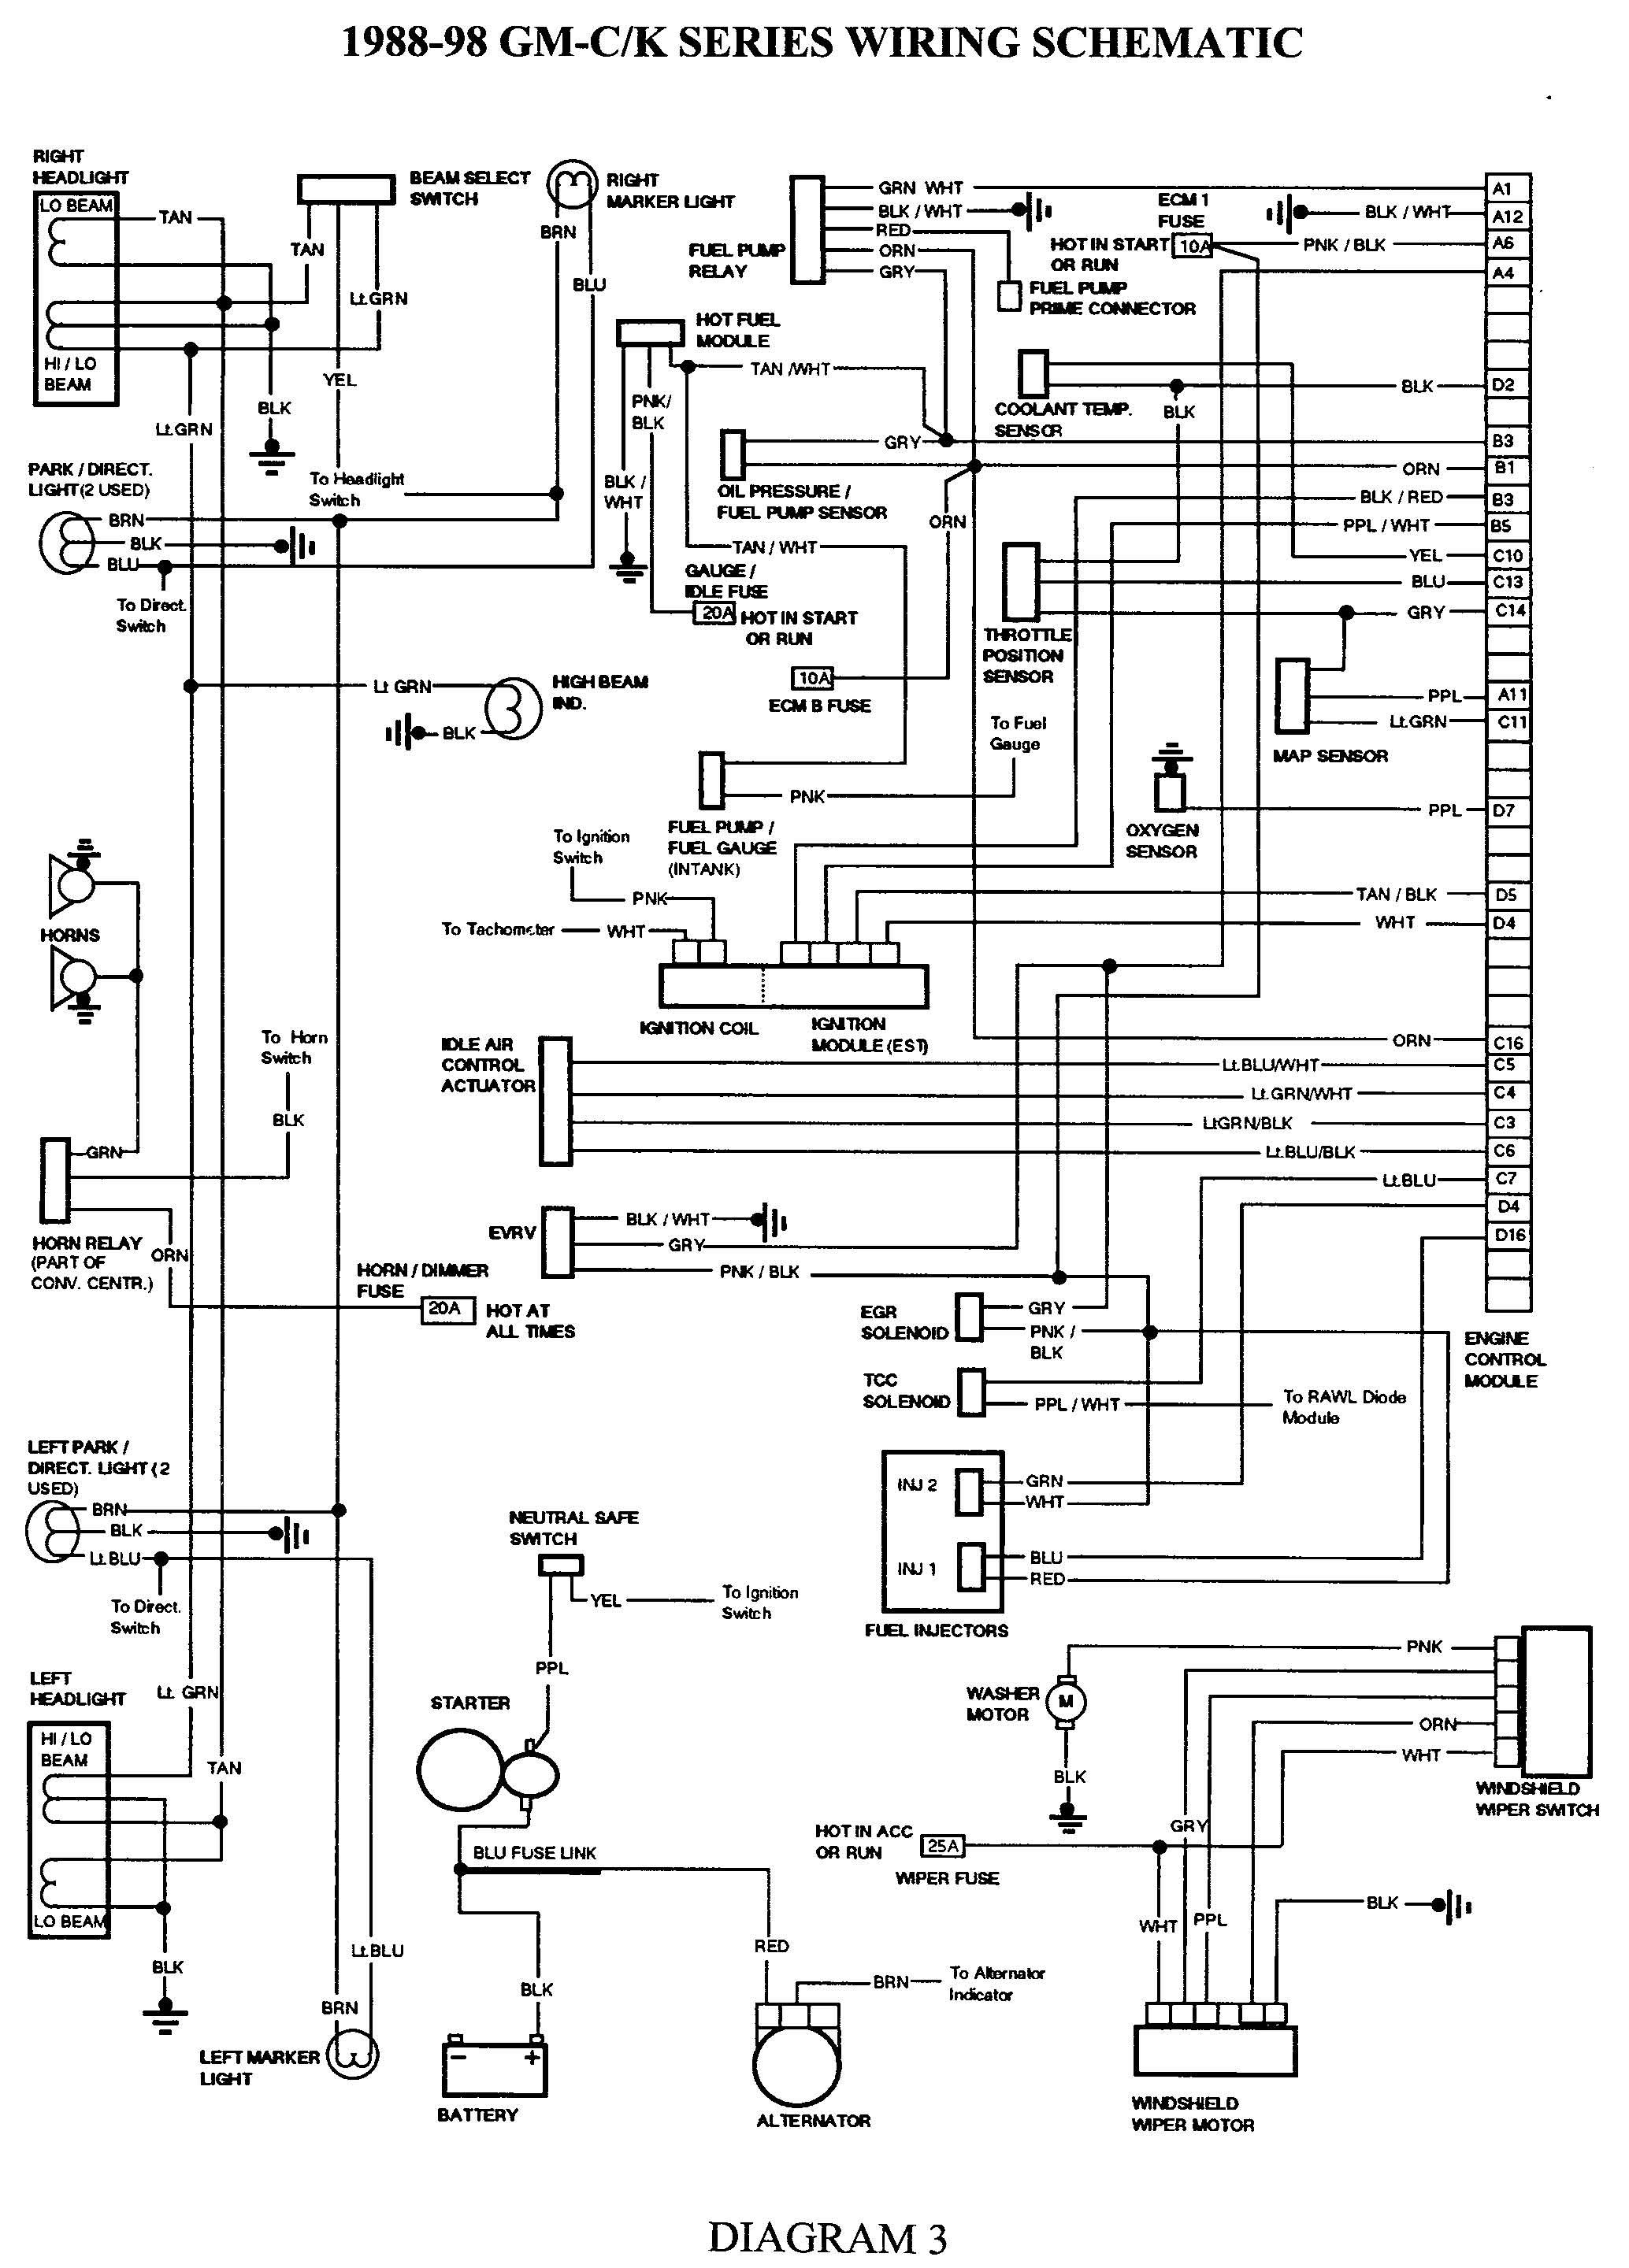 2006 tahoe wiring diagram simple wiring diagram 2002 chevy tahoe fuel  system diagram 98 tahoe wire